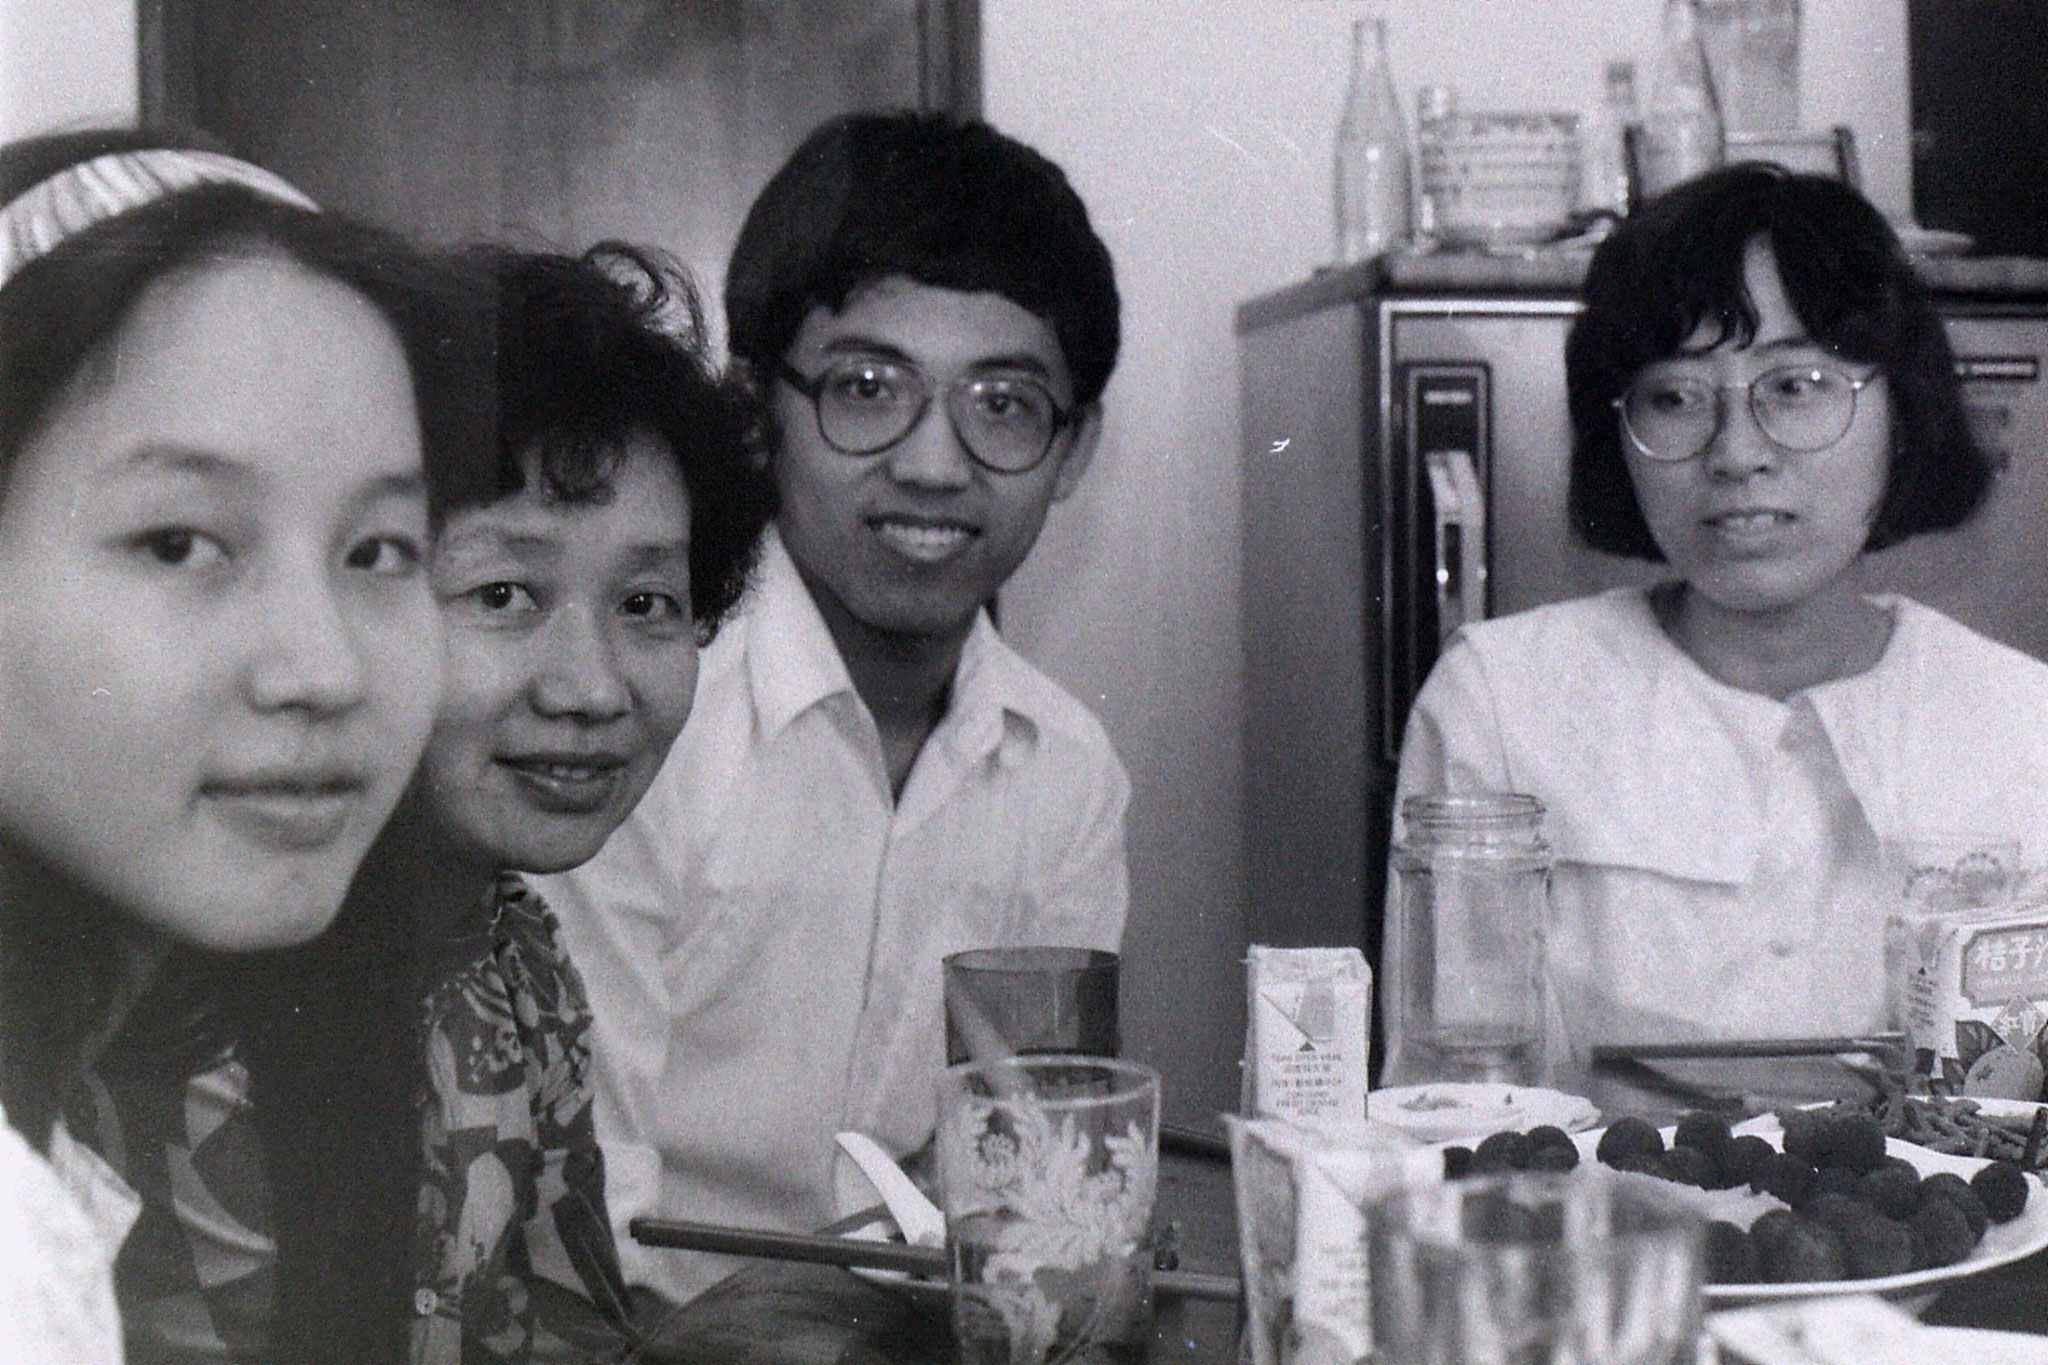 3/7/1989: 12: Shanghai, lunch at Prof. Xu's flat